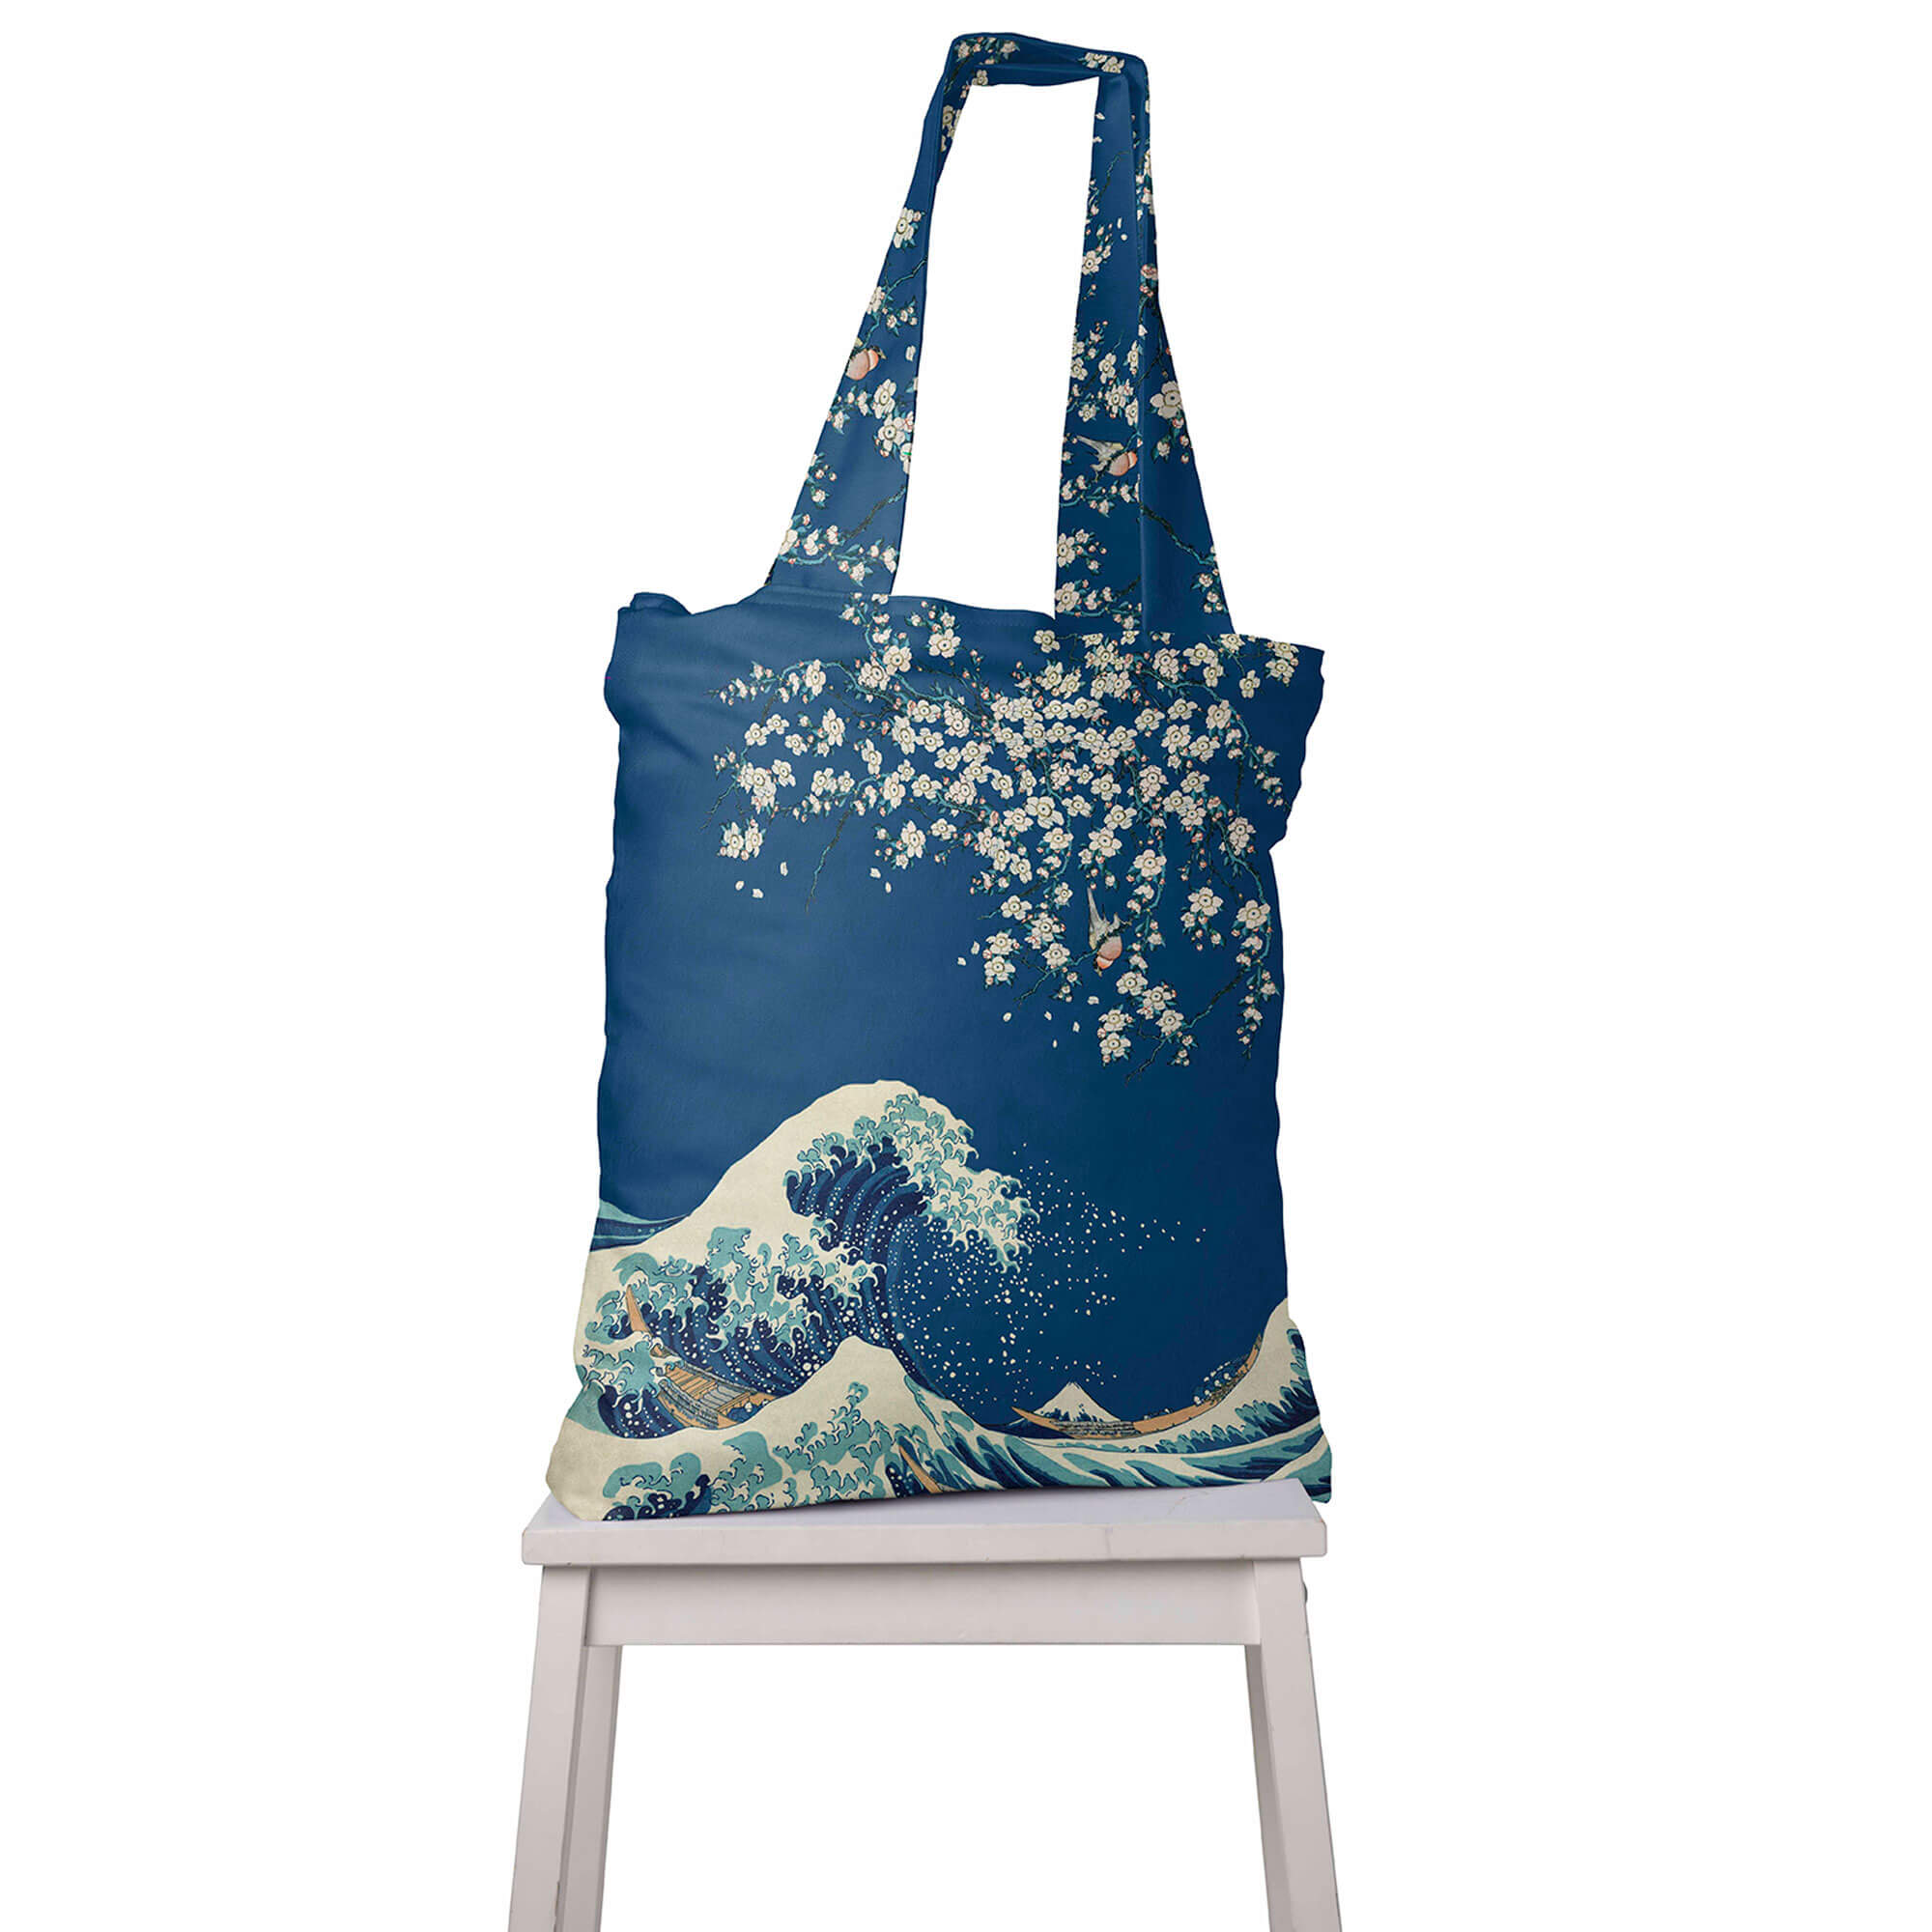 Fala-Kwiatow_Torba_2_hokusai_bag_cacofonia_milano_japan_flowers_big_wave